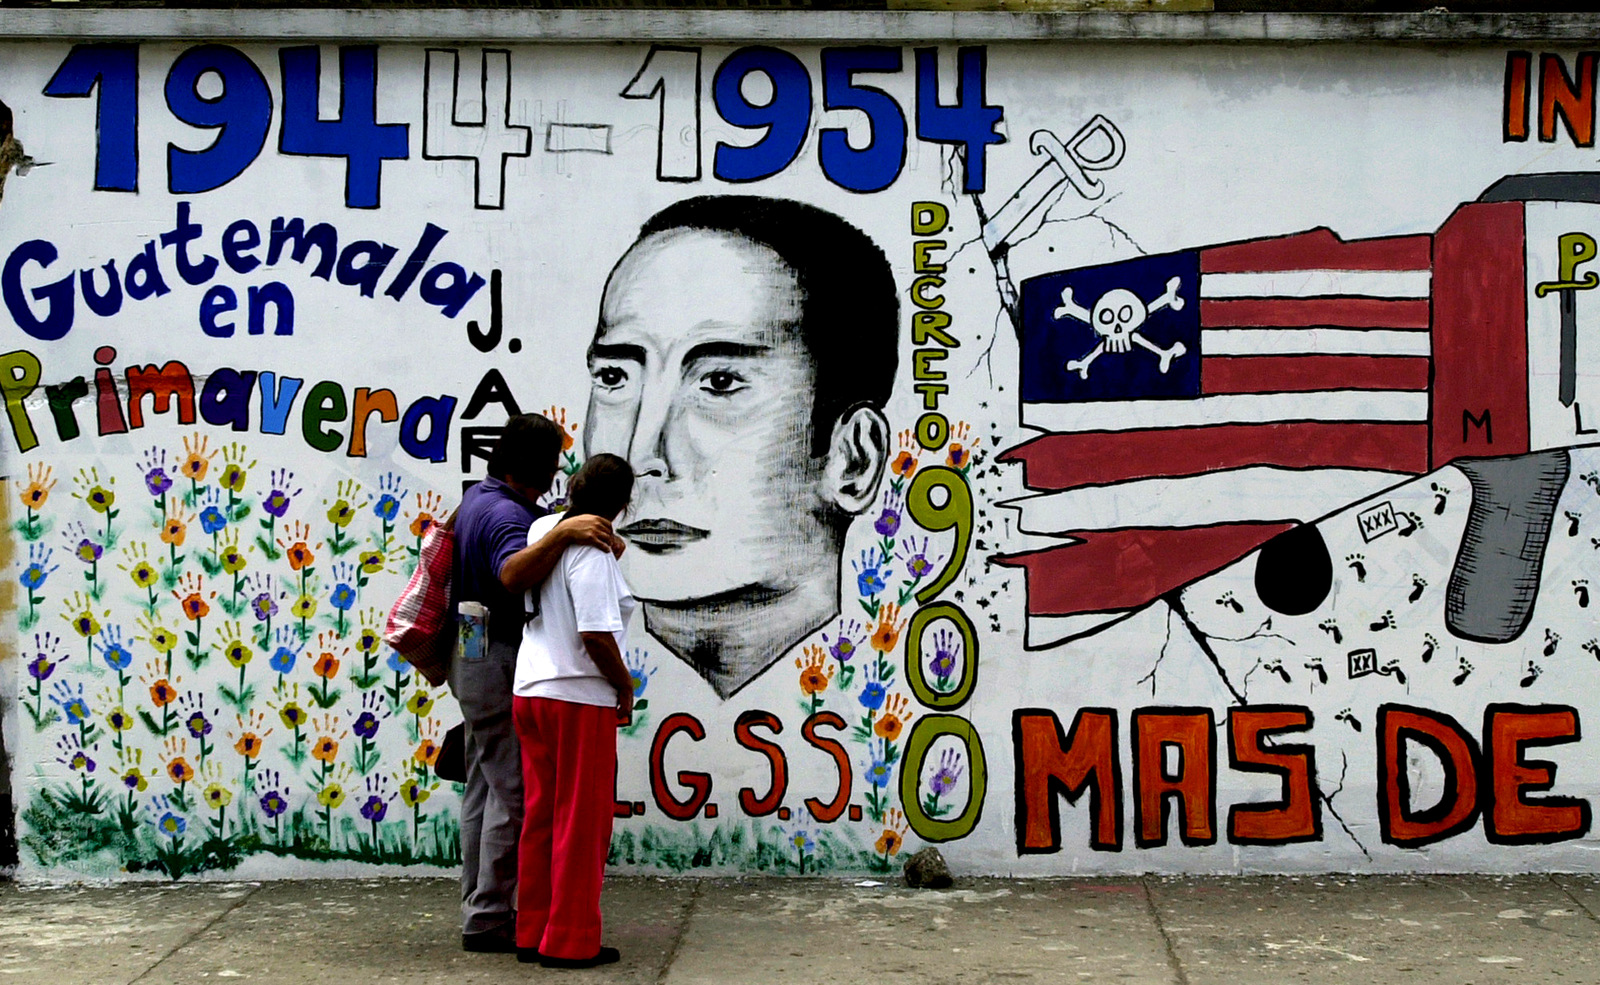 A couple walks by a mural in downtown Guatemala City commemorating the 50th anniversary of a CIA backed military intervention that ousted leftist president Jacobo Arbenz in Guatemala. (AP/Rodrigo Abd)